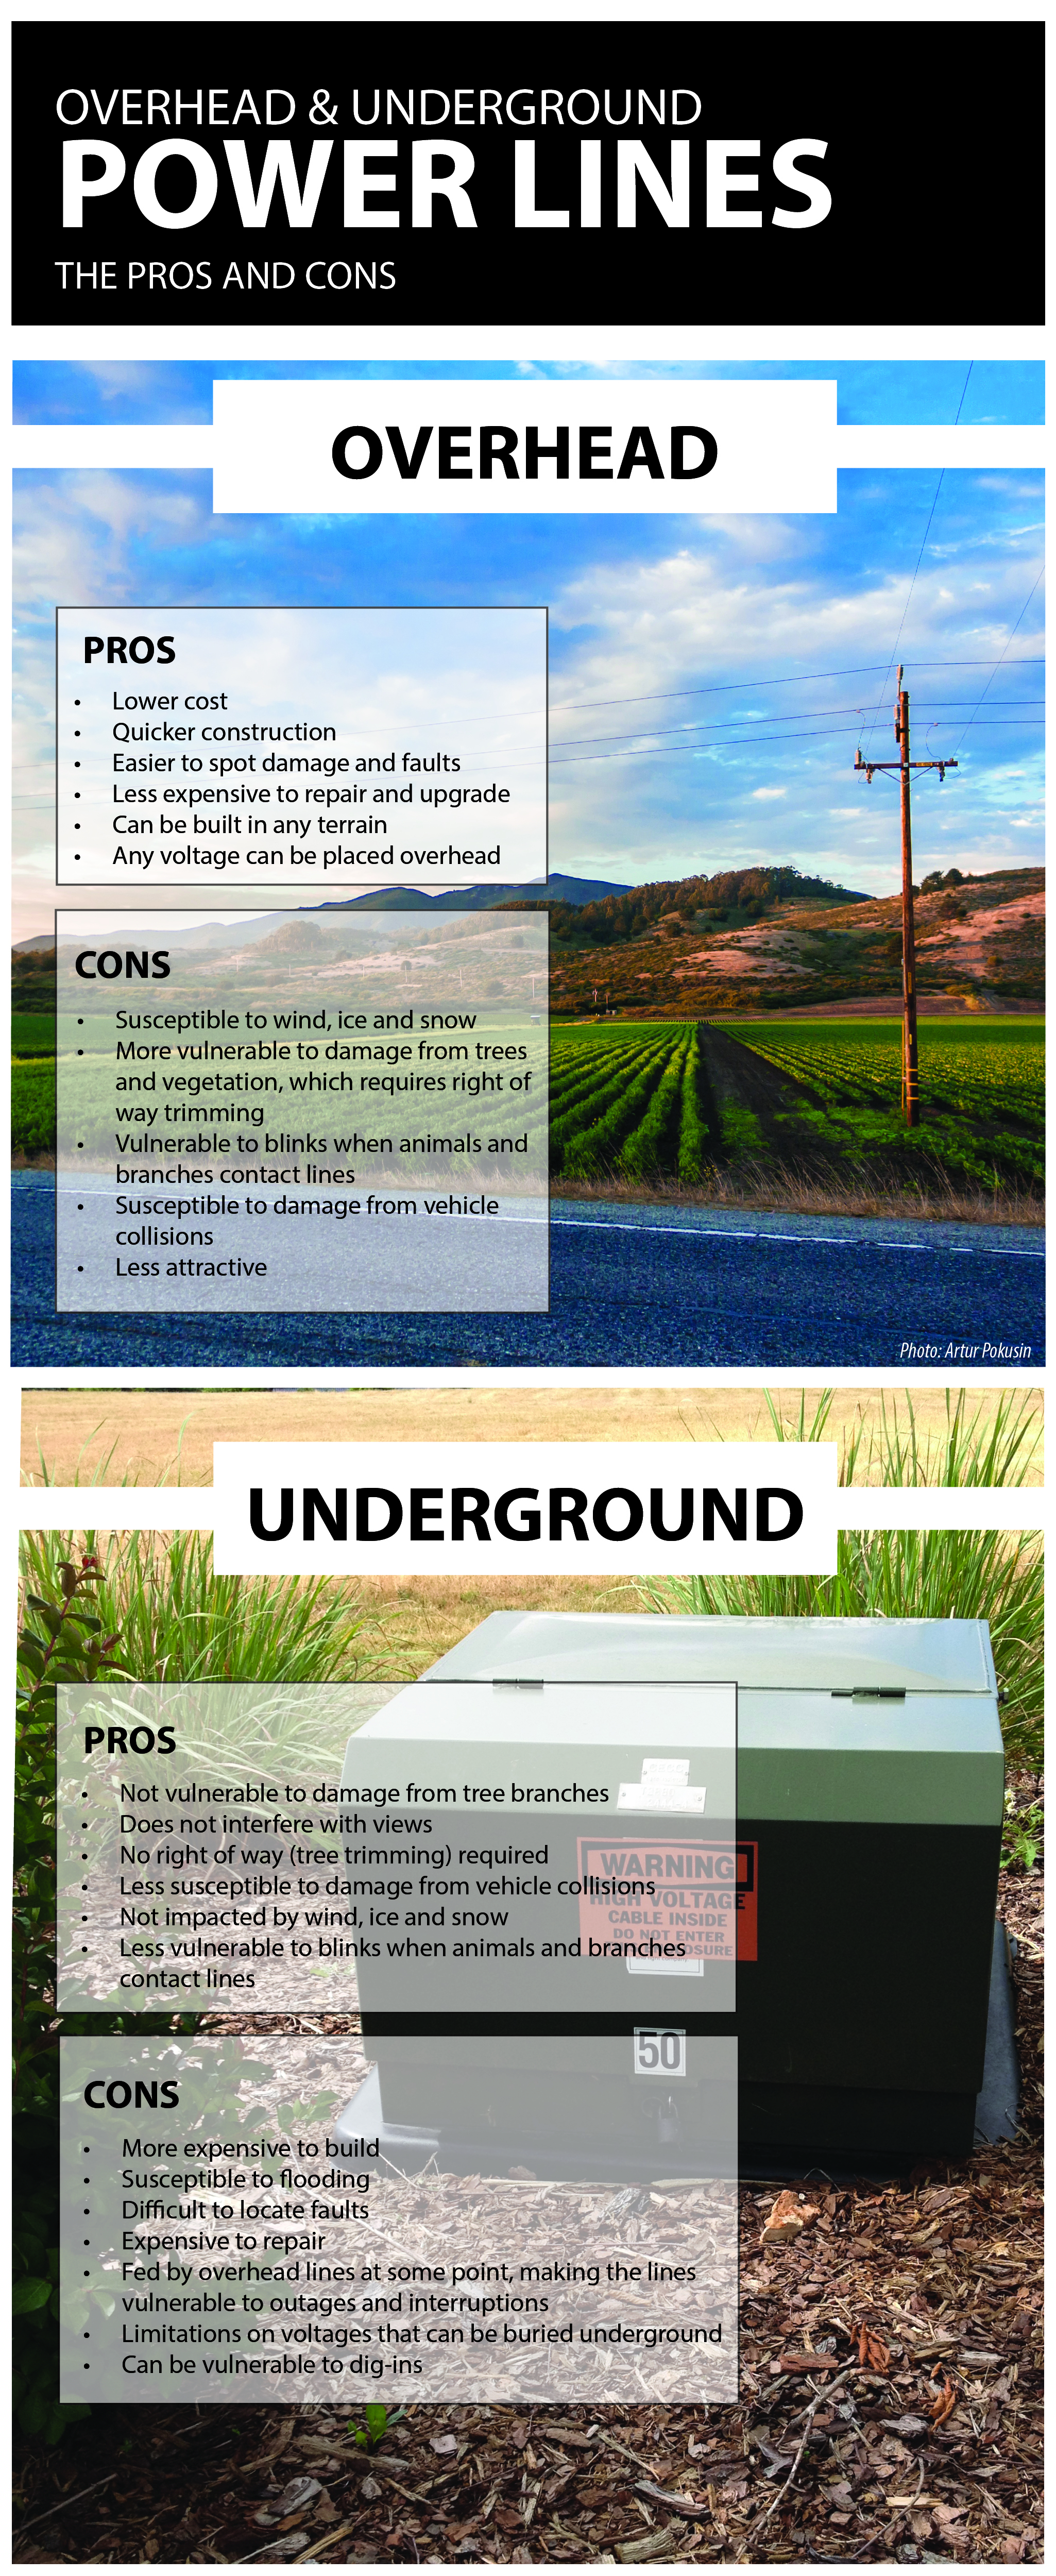 Pros and cons to overhead and underground power lines